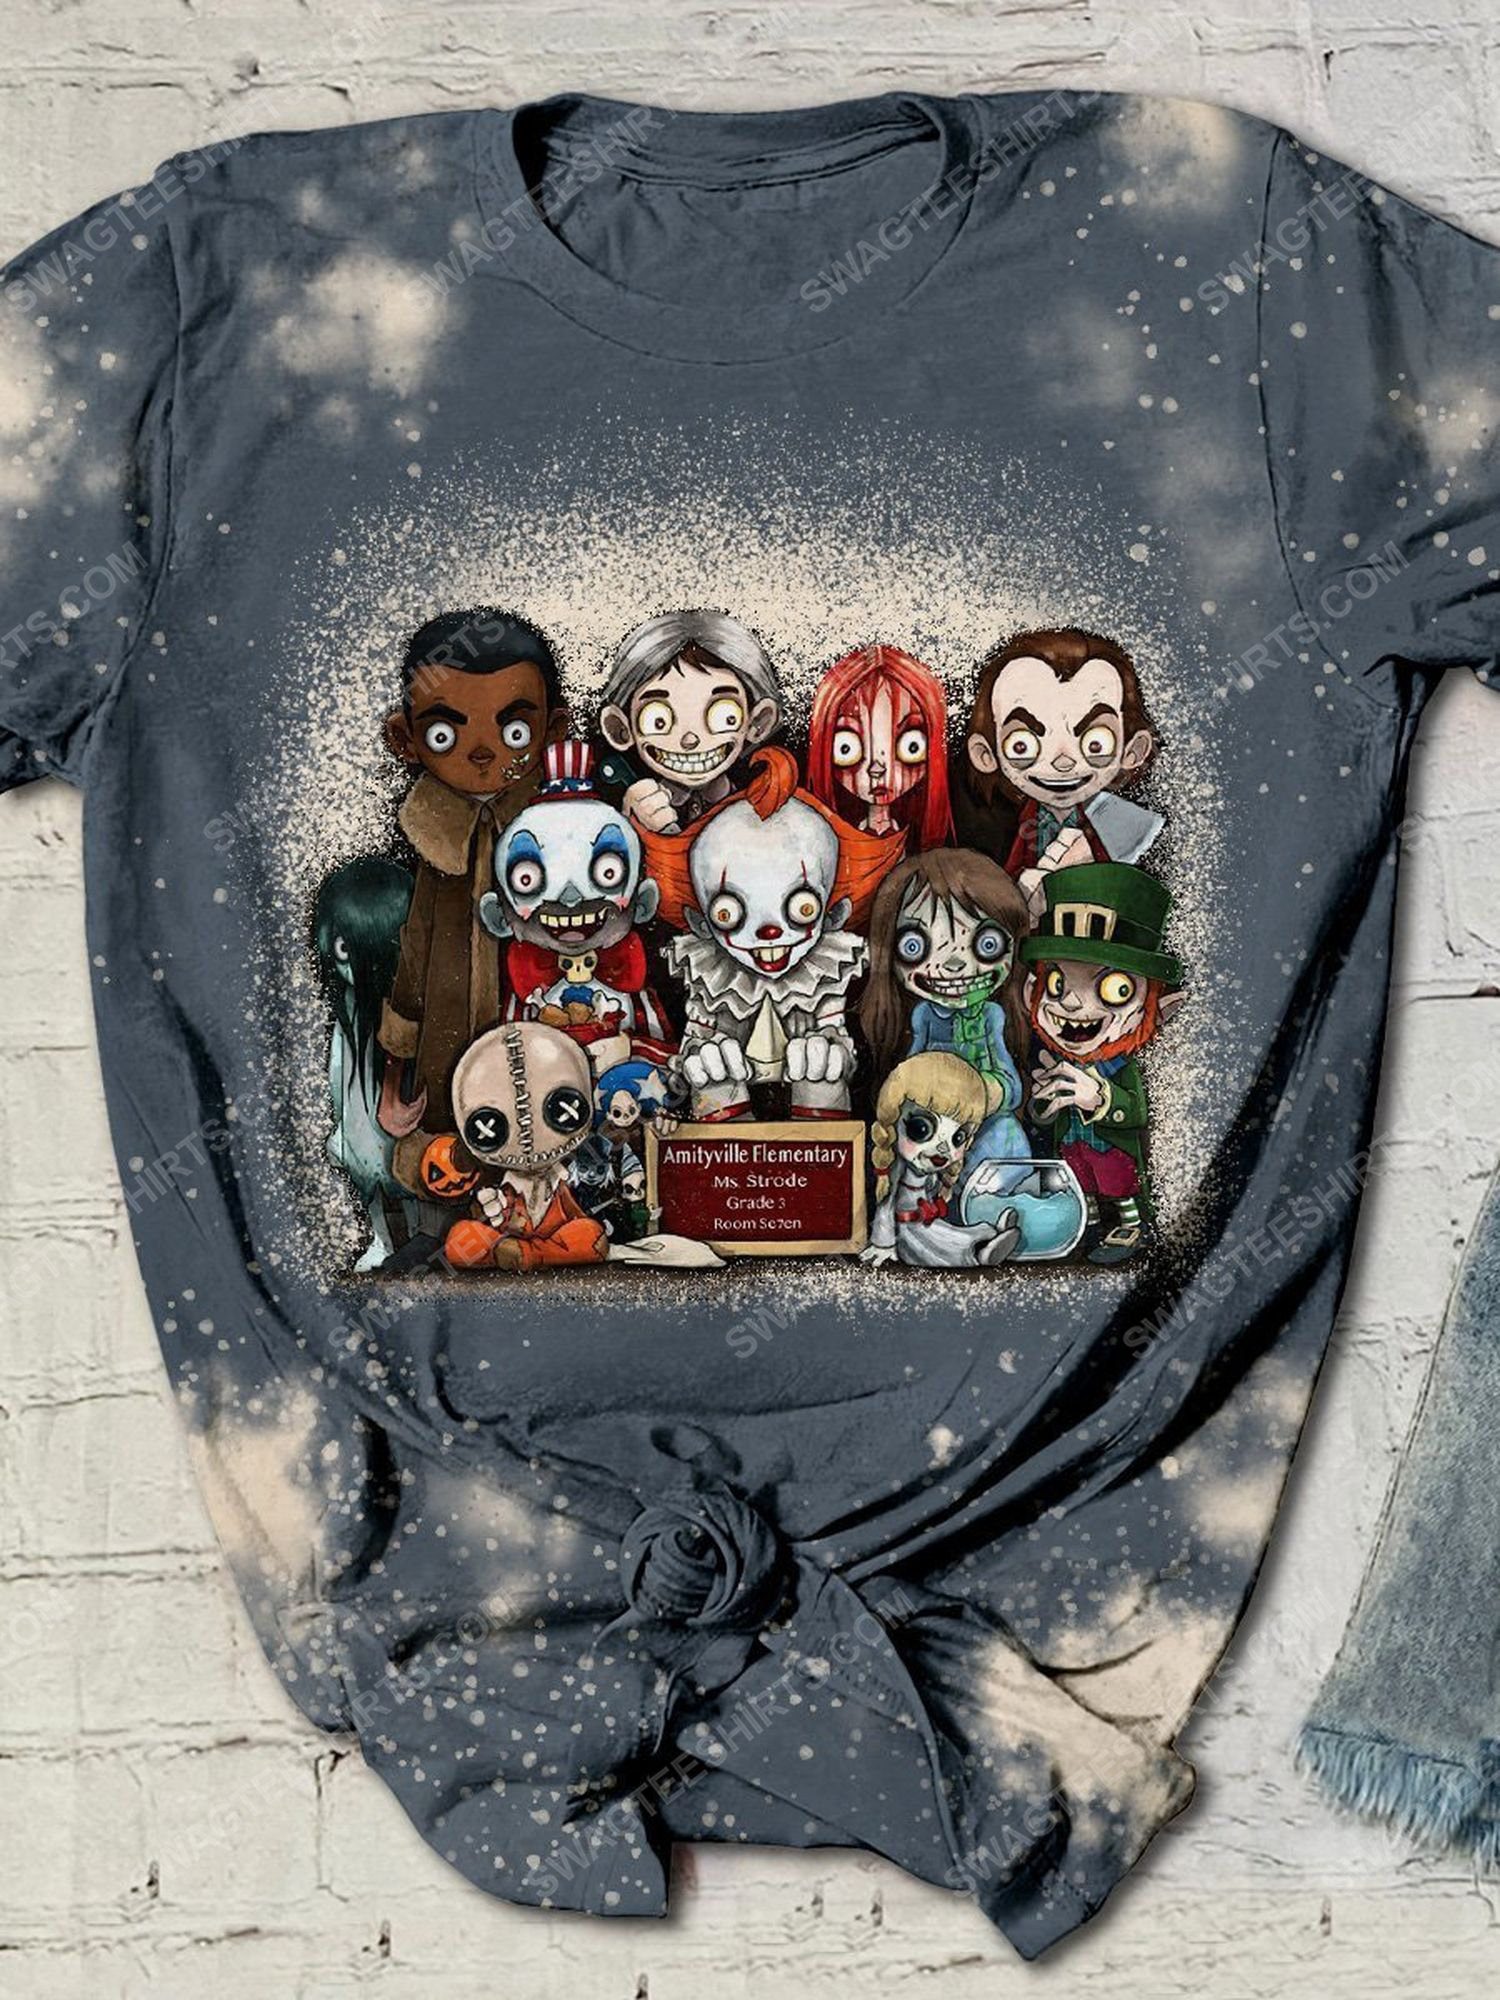 Halloween night and serial killer movies chibi bleached shirt 1 - Copy